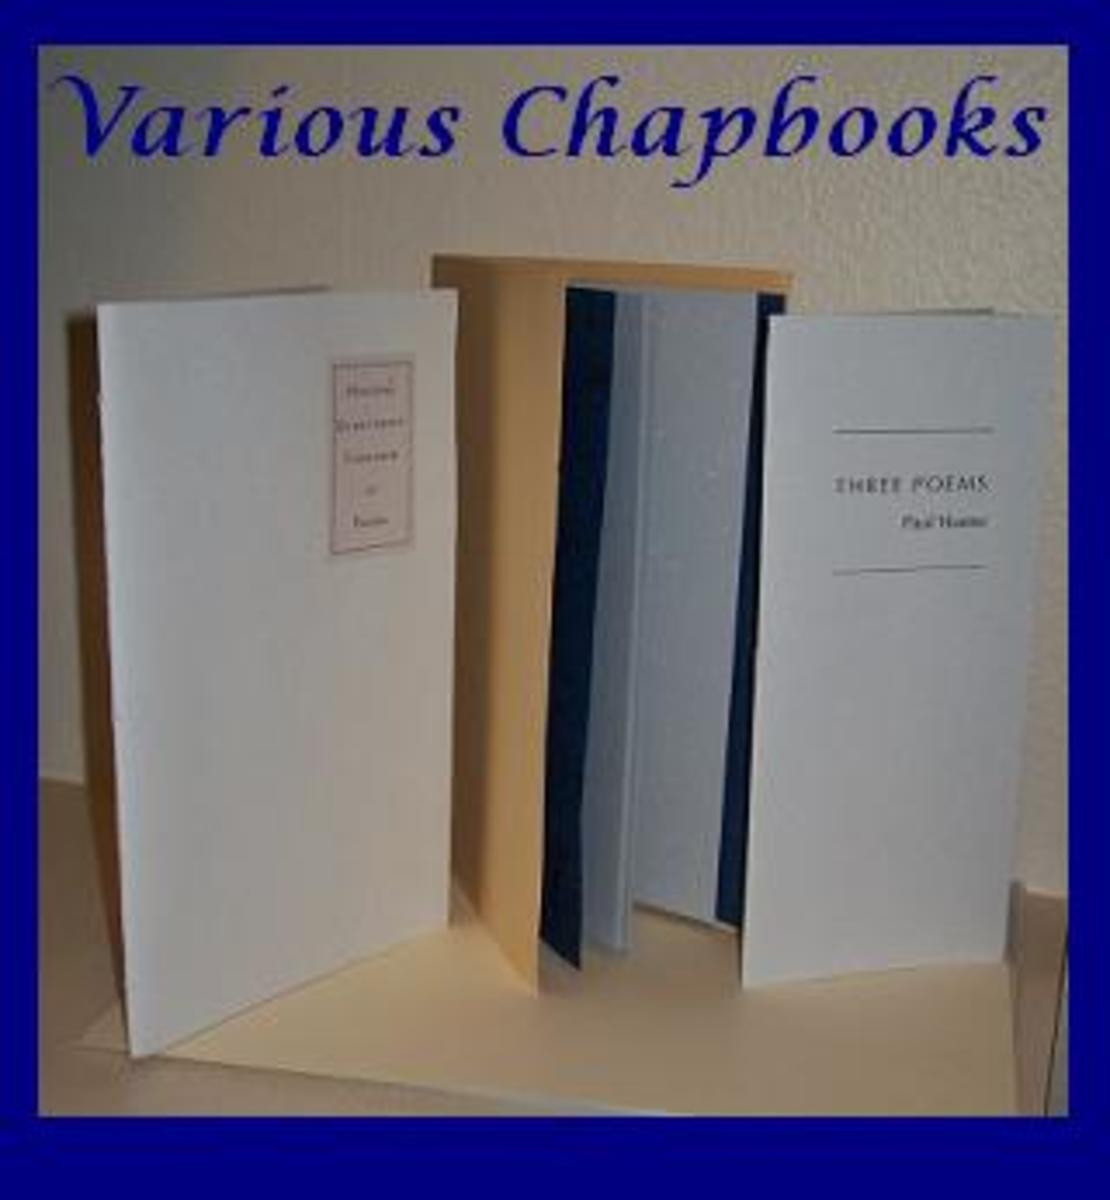 Chapbooks can be made in different sizes, shapes, and colors.